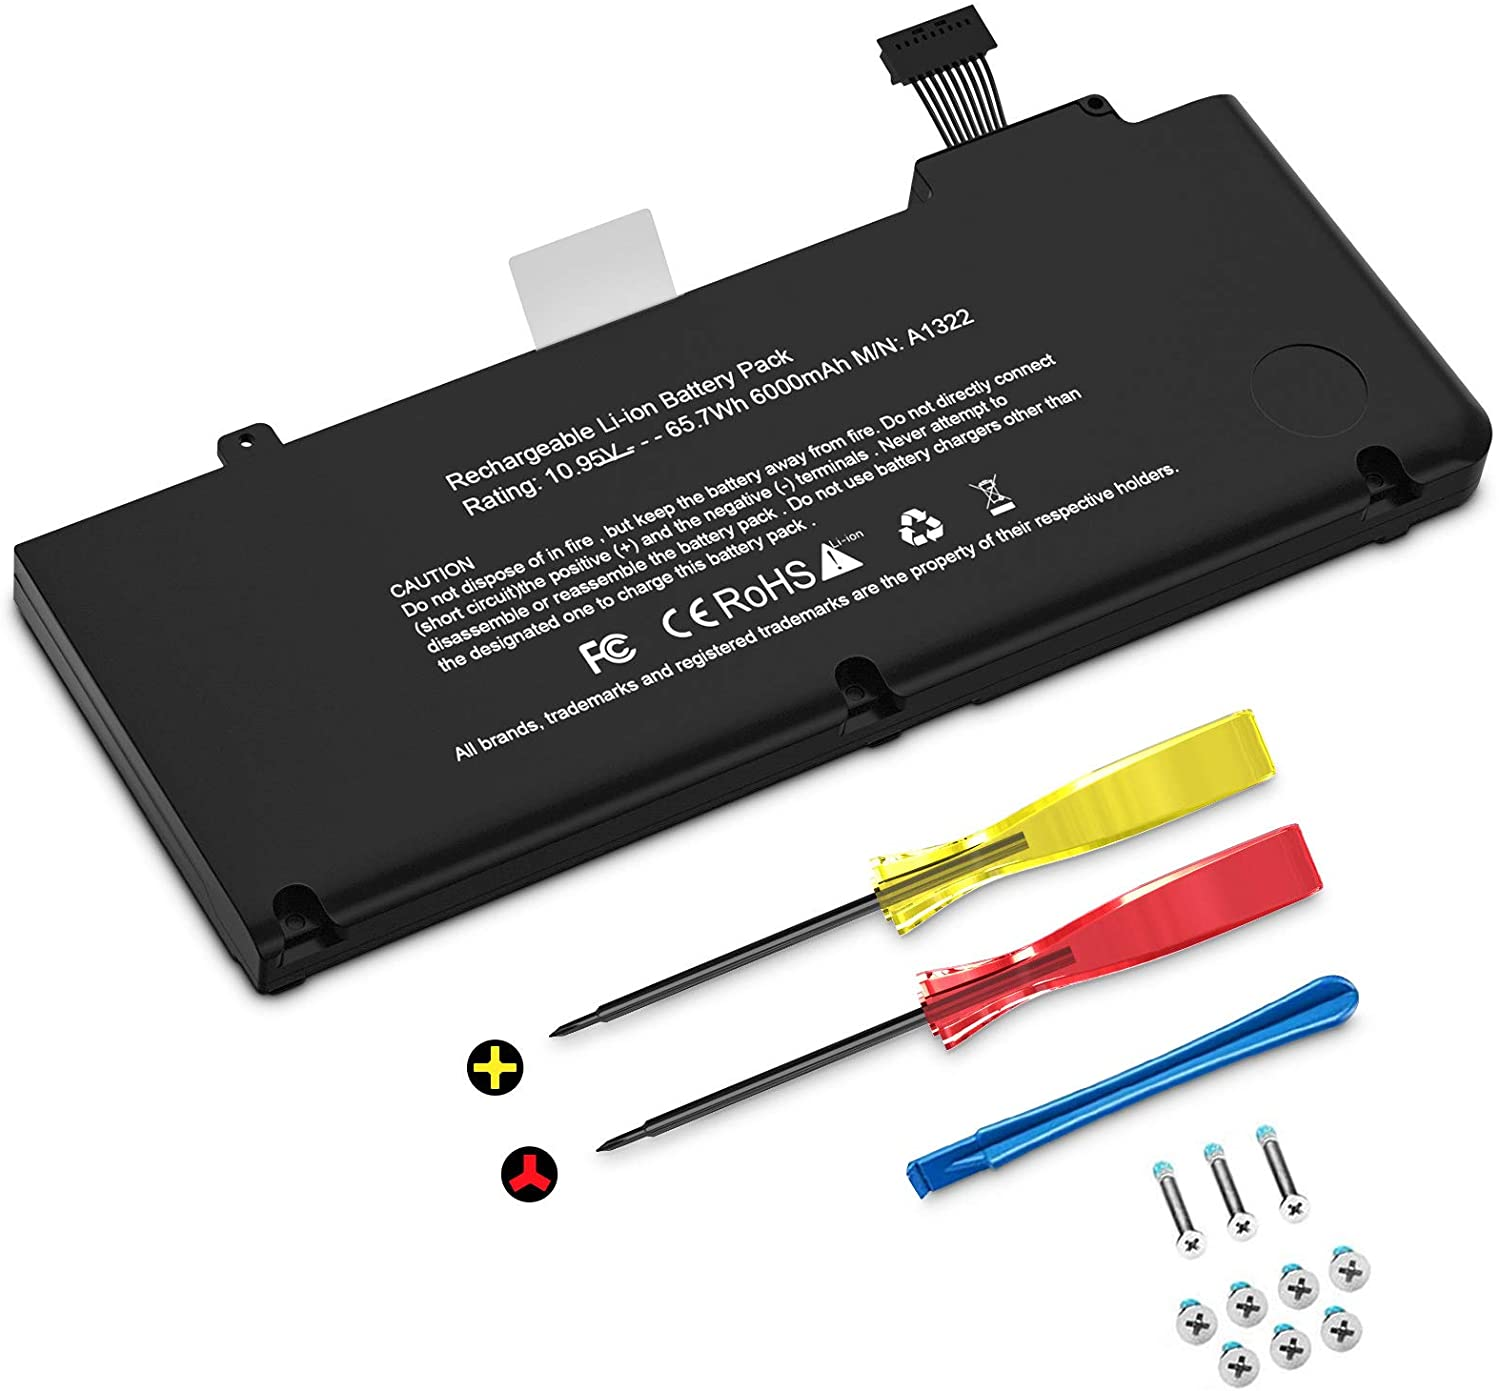 A1322 Battery, TECHOWL A1278 Battery for MacBook Pro 13 inch Mid 2009 2010 2011 2012, Replacement Batteries fit for MacBook Pro 5,5 7,1 8,1 9,2, MB990LL/A MB991ll/A MC724LL/A [10.95V 65.7Wh 6000mAh]